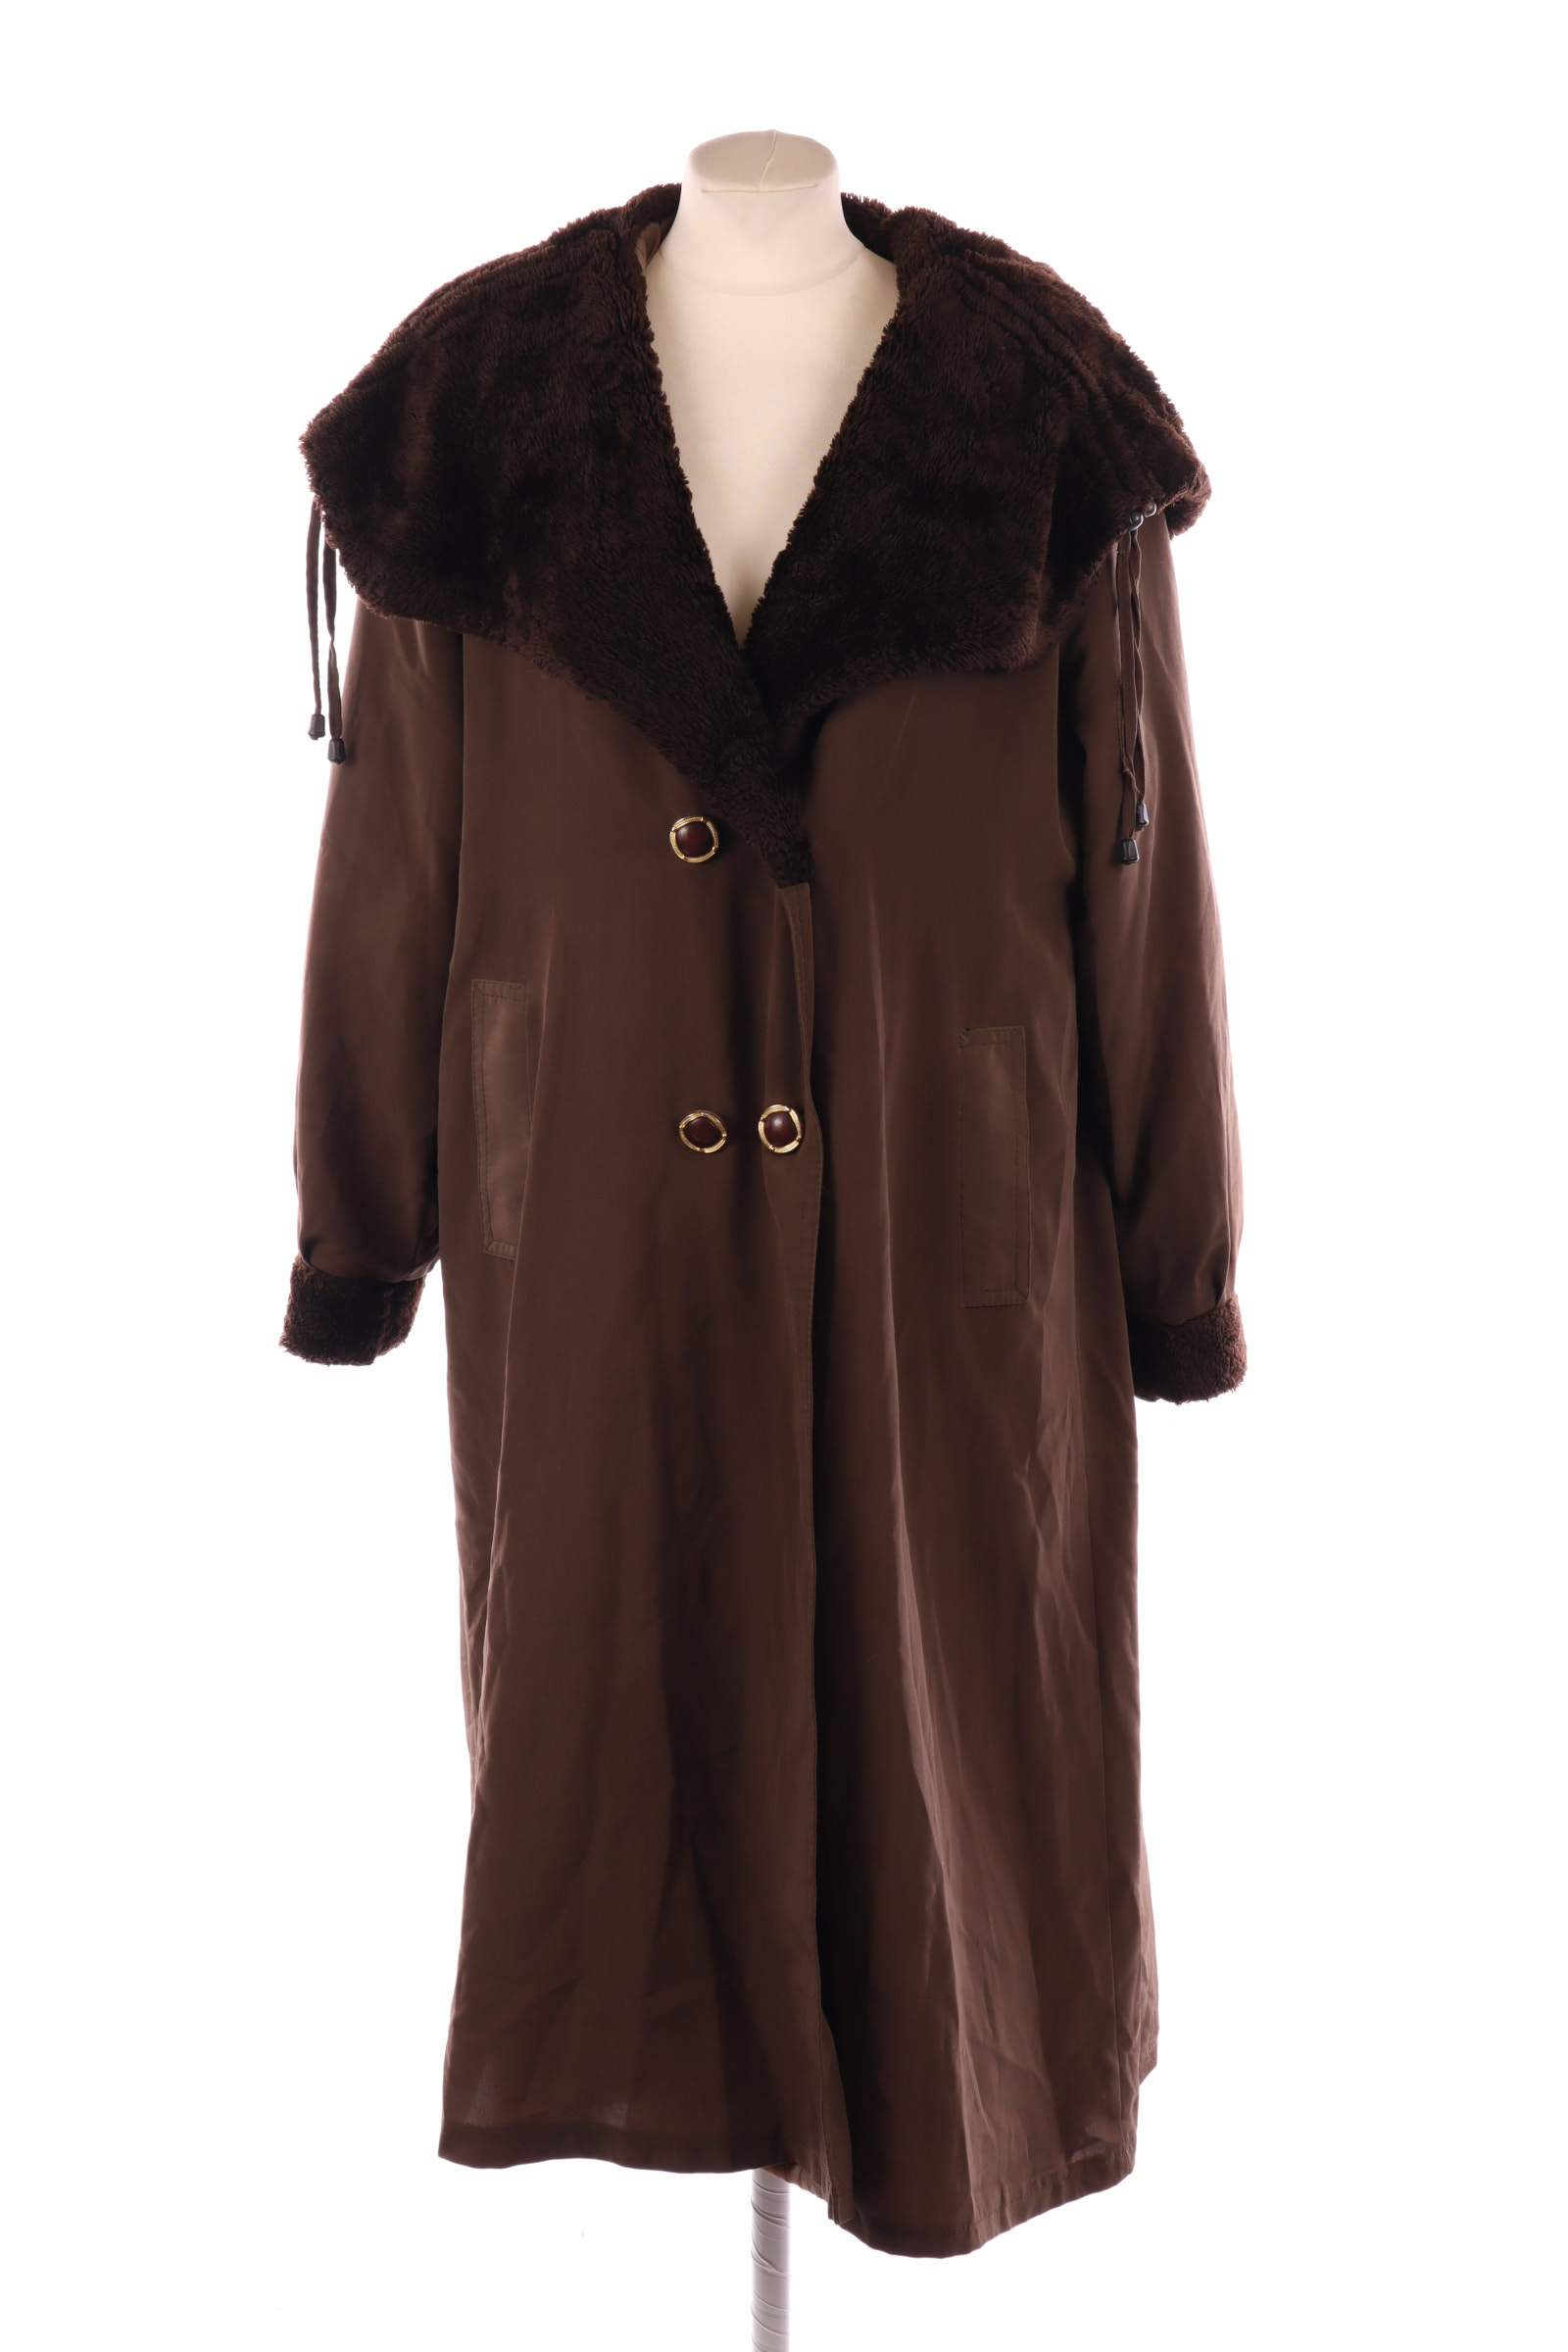 Don Marco Brown Coat - upty.store